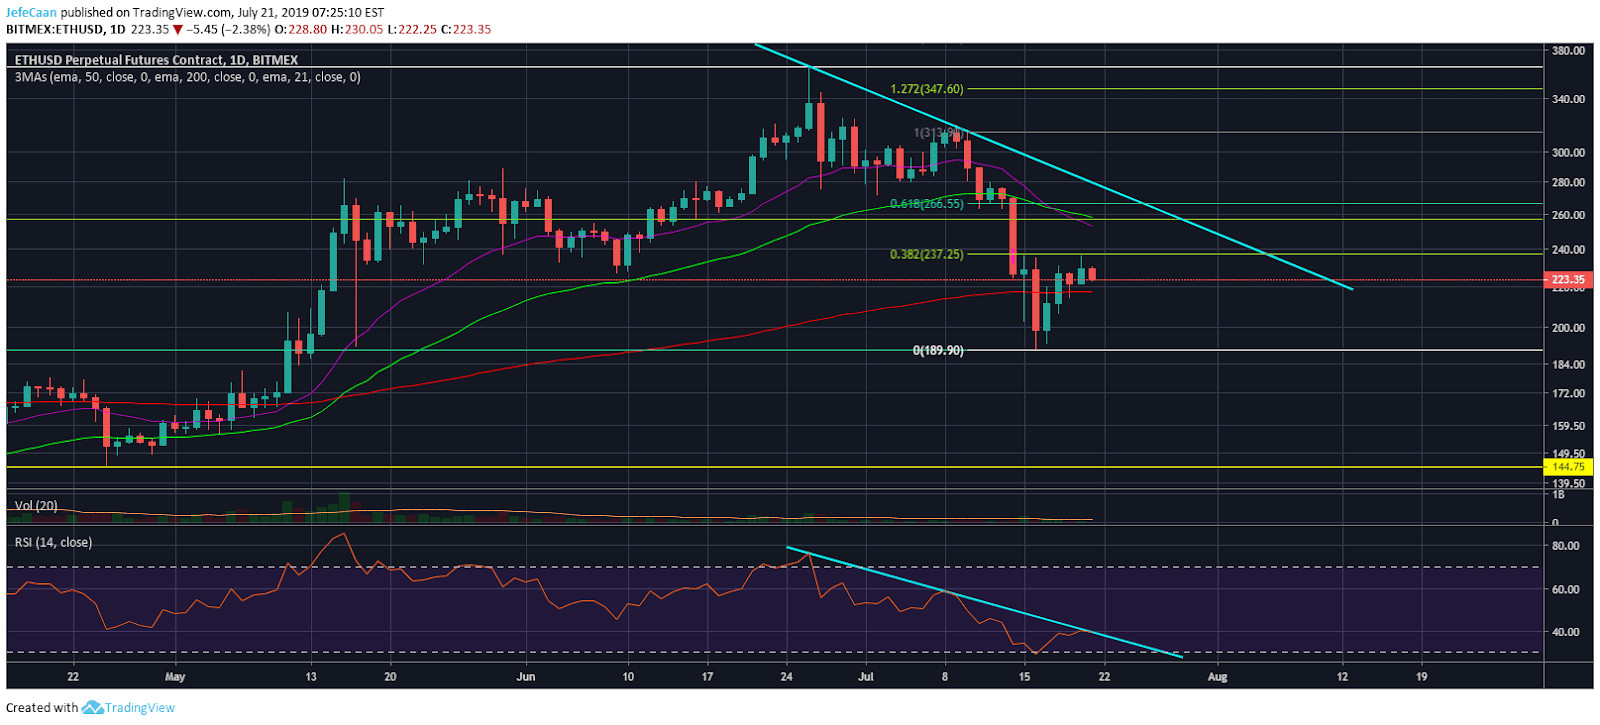 Ethereum (ETH)'s Next Decline Below 200 Day EMA Likely To Be Devastating